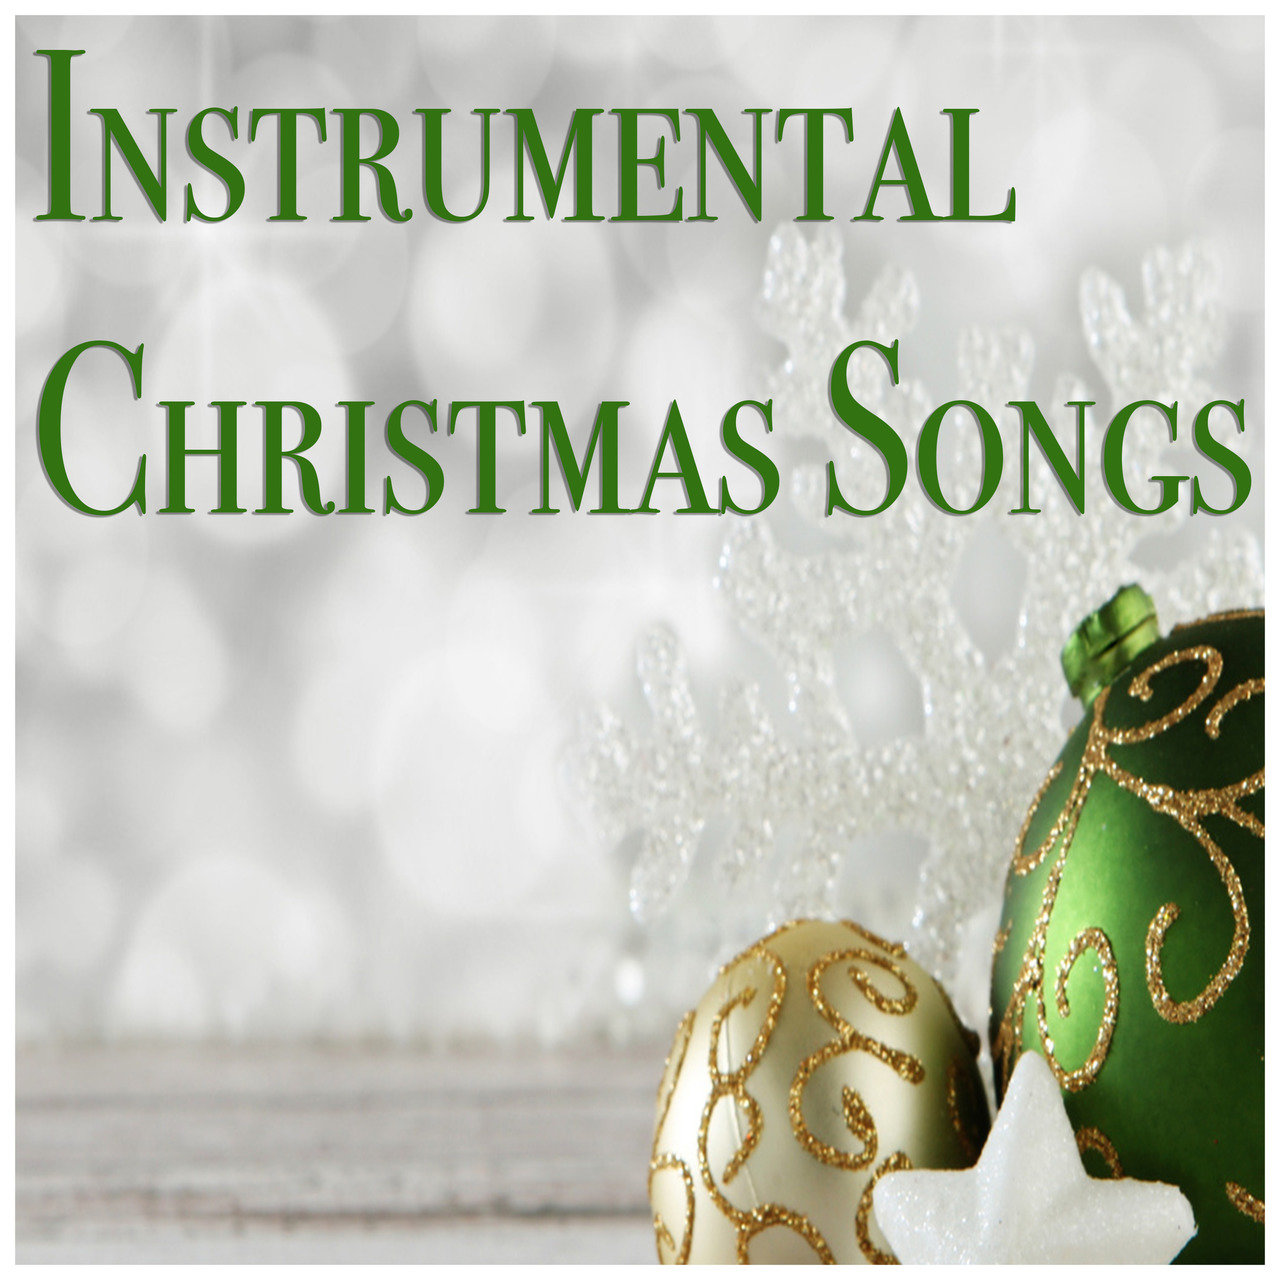 TIDAL: Listen to Instrumental Christmas Songs on TIDAL